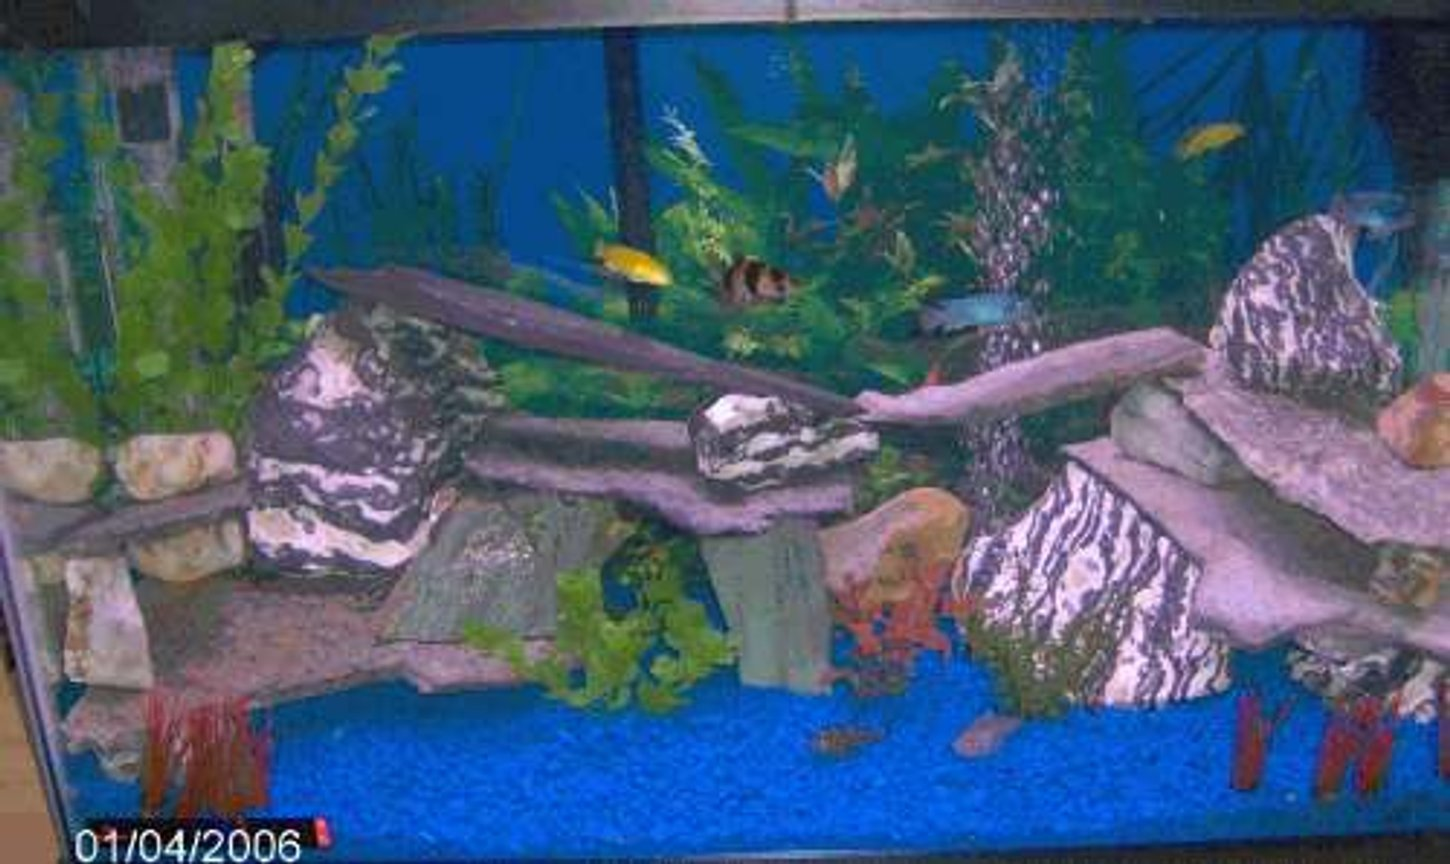 29 gallons freshwater fish tank (mostly fish and non-living decorations) - tank